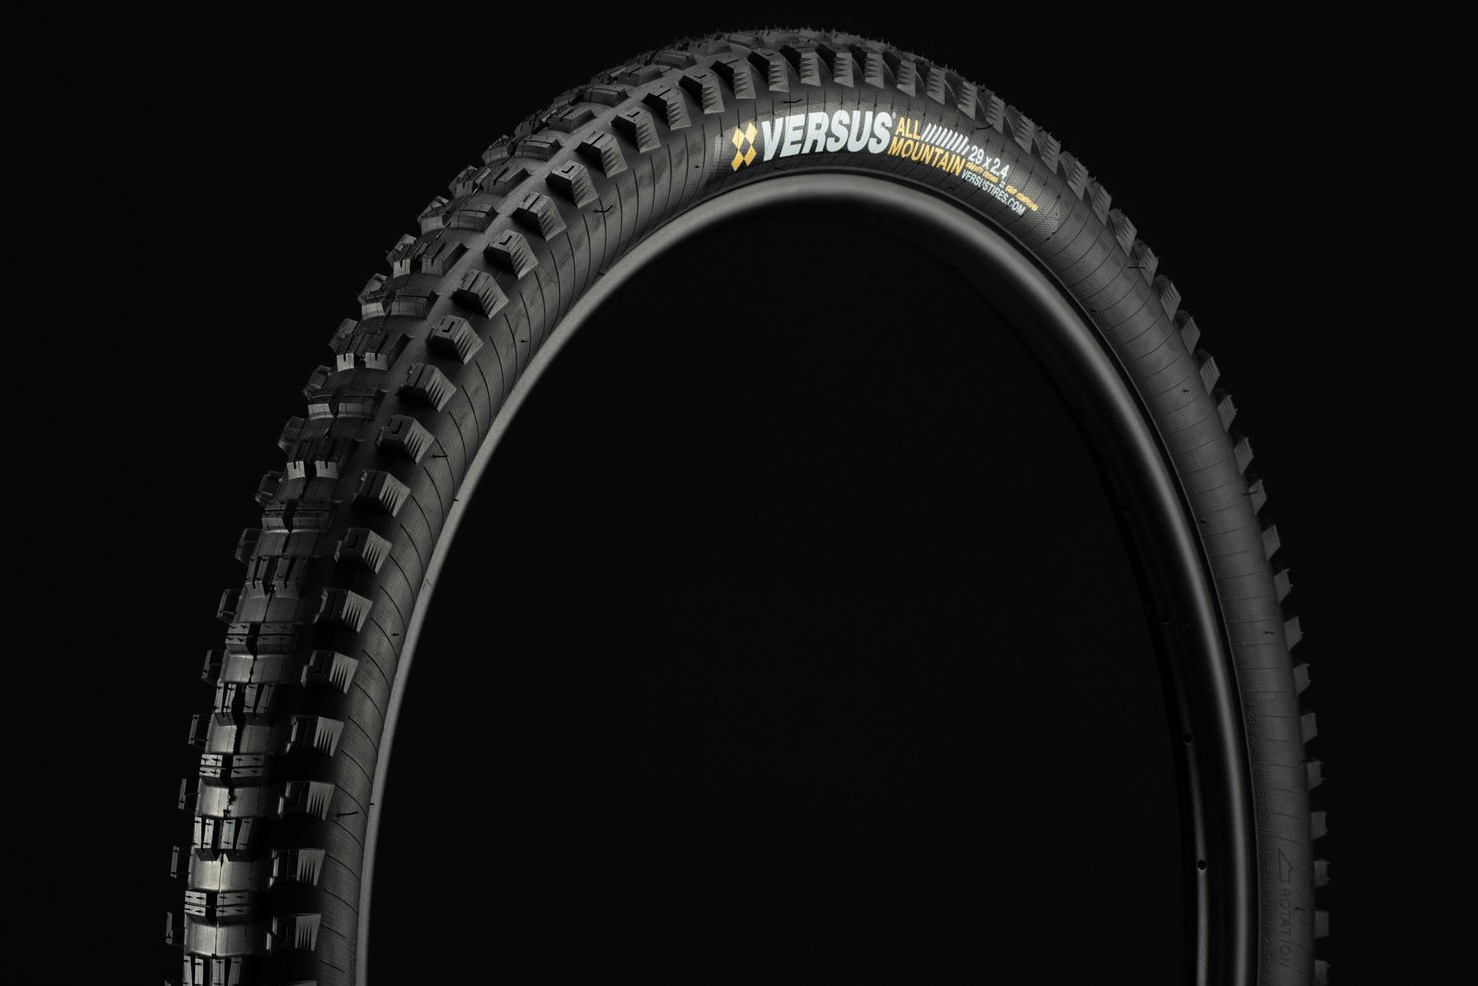 Versus mountain bike tires